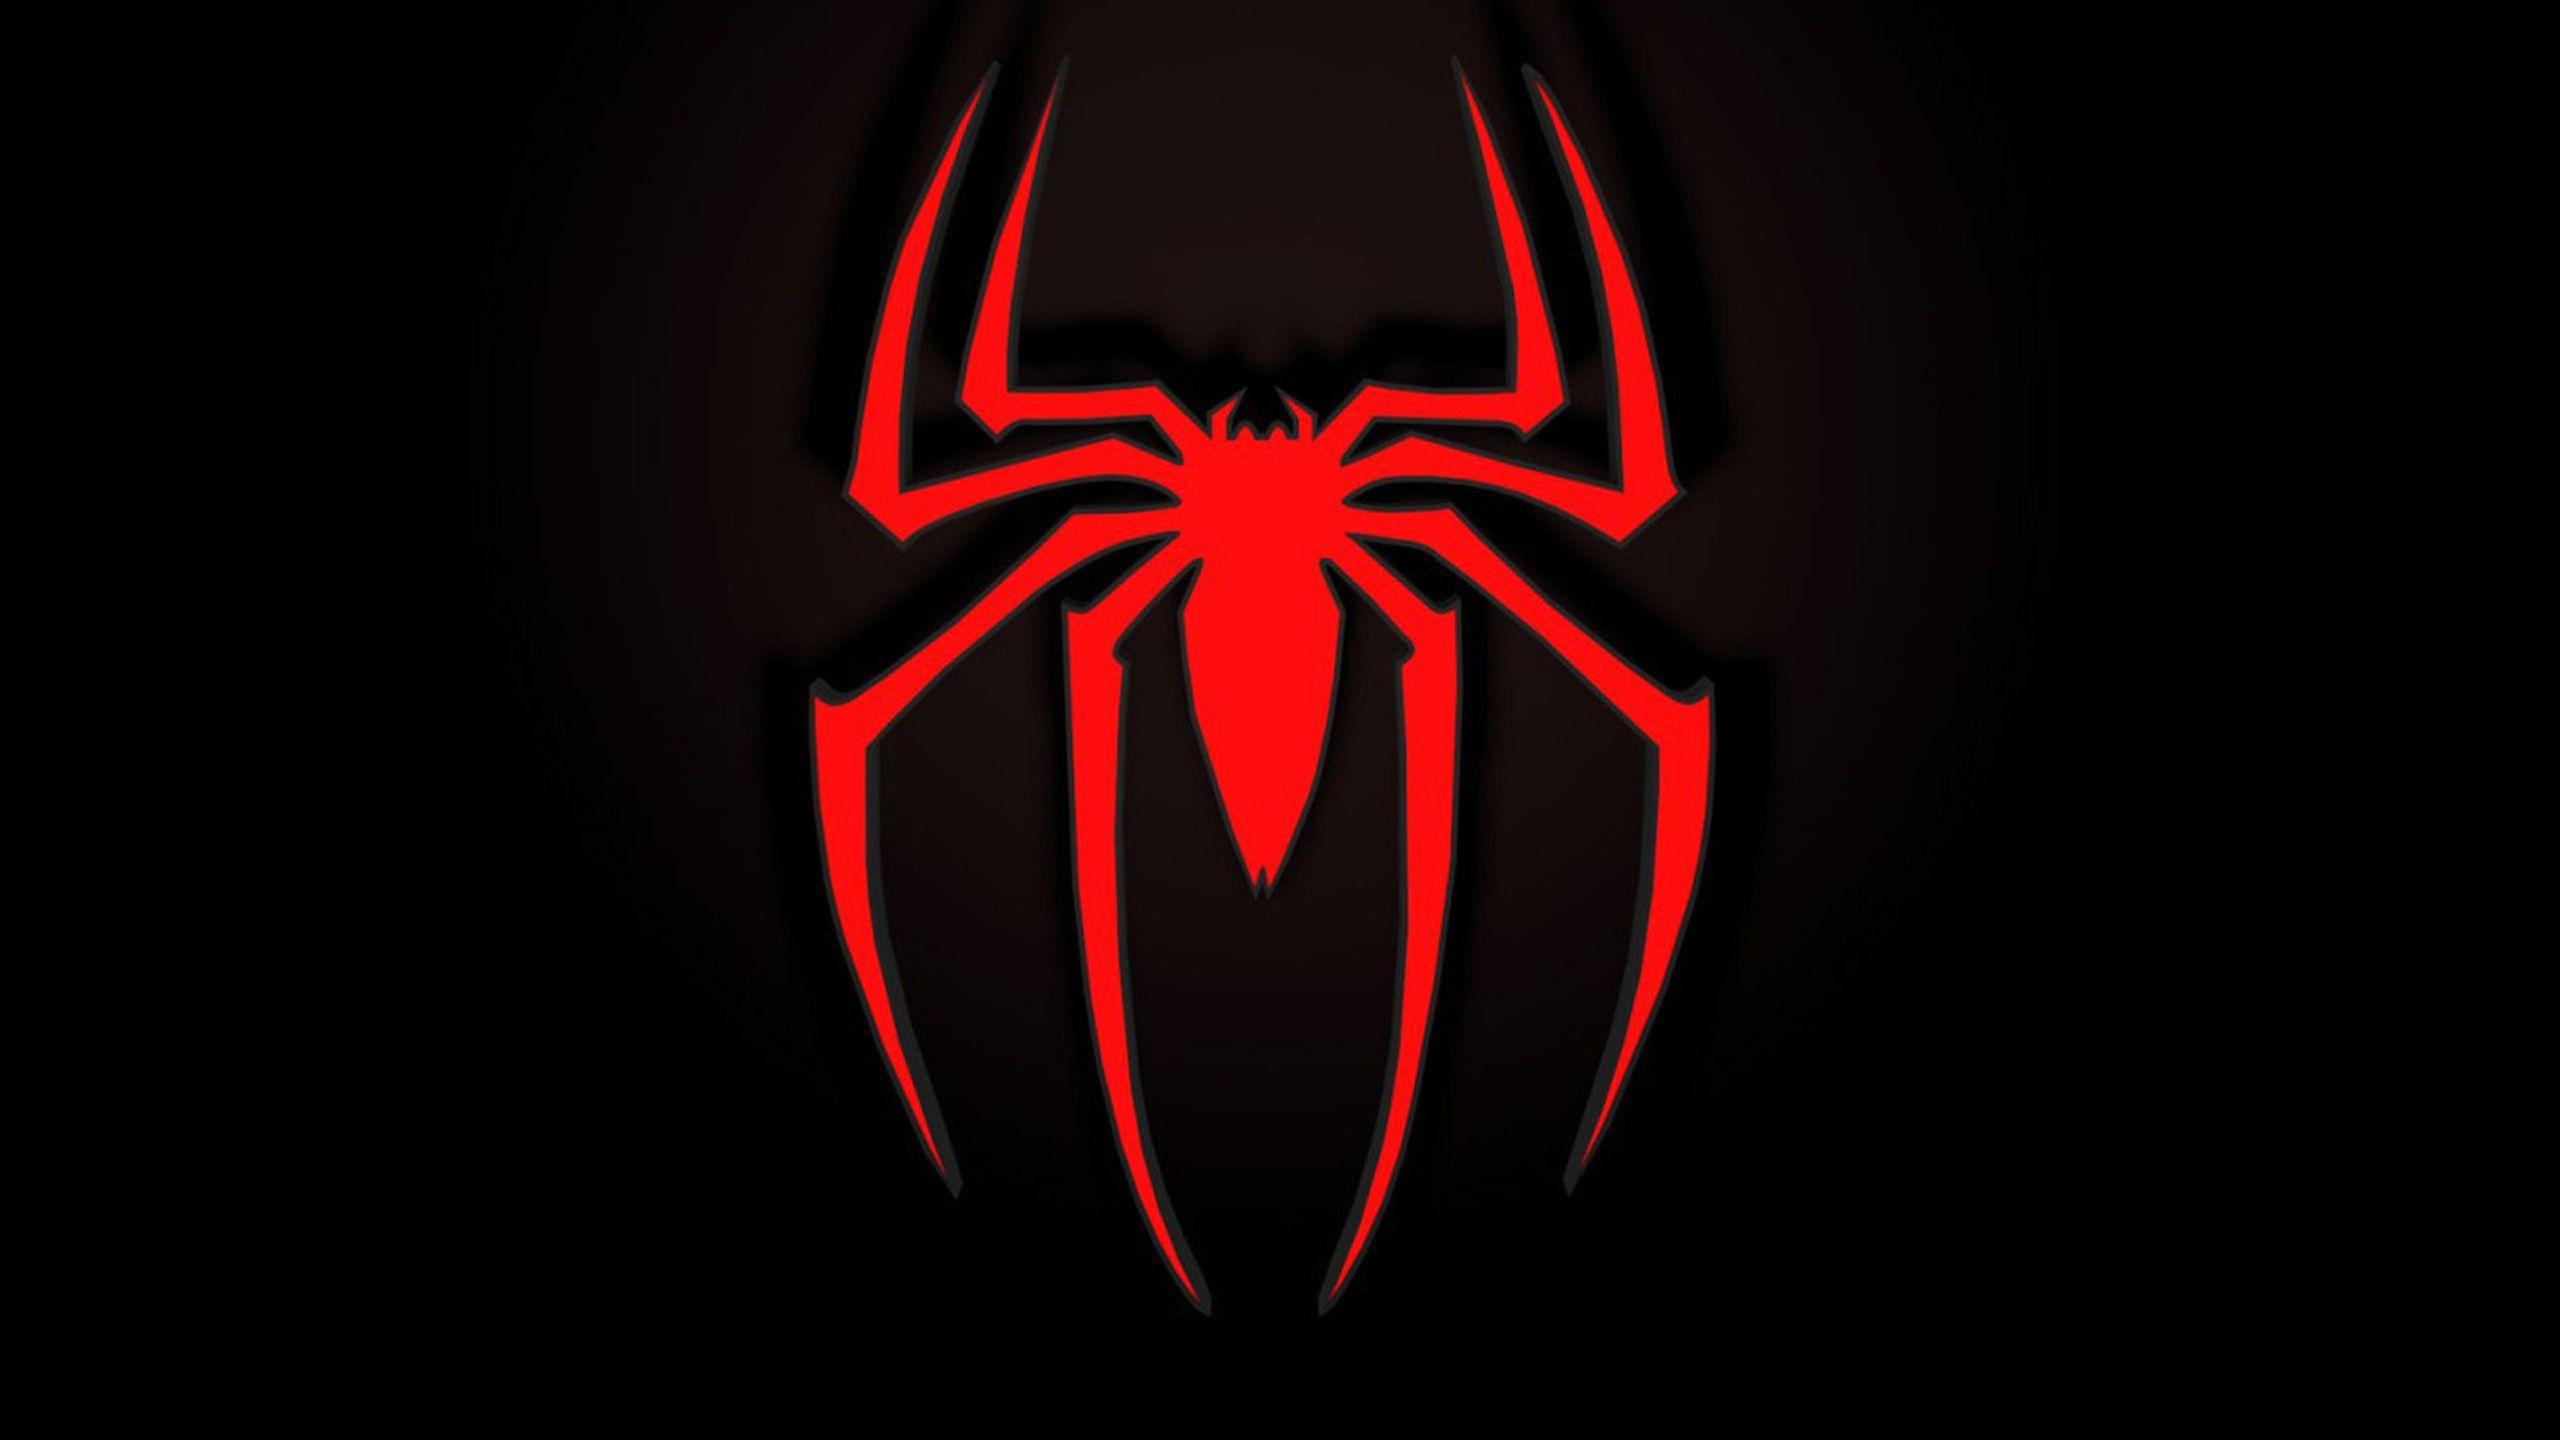 black spiderman logo wallpapers » Wallppapers Gallery